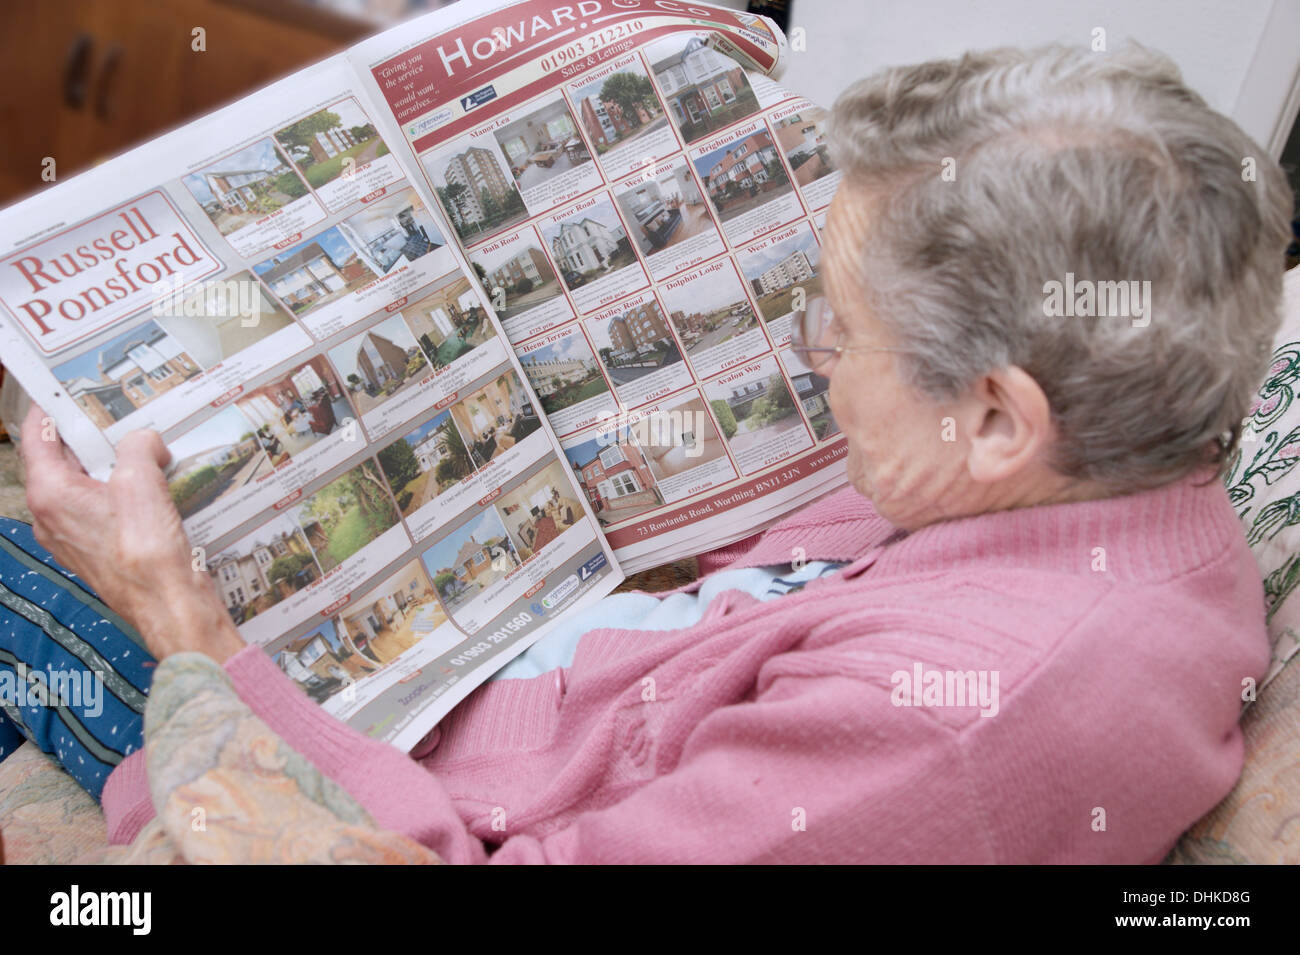 Elderly woman looking at properties on the property pages in a local paper - Stock Image